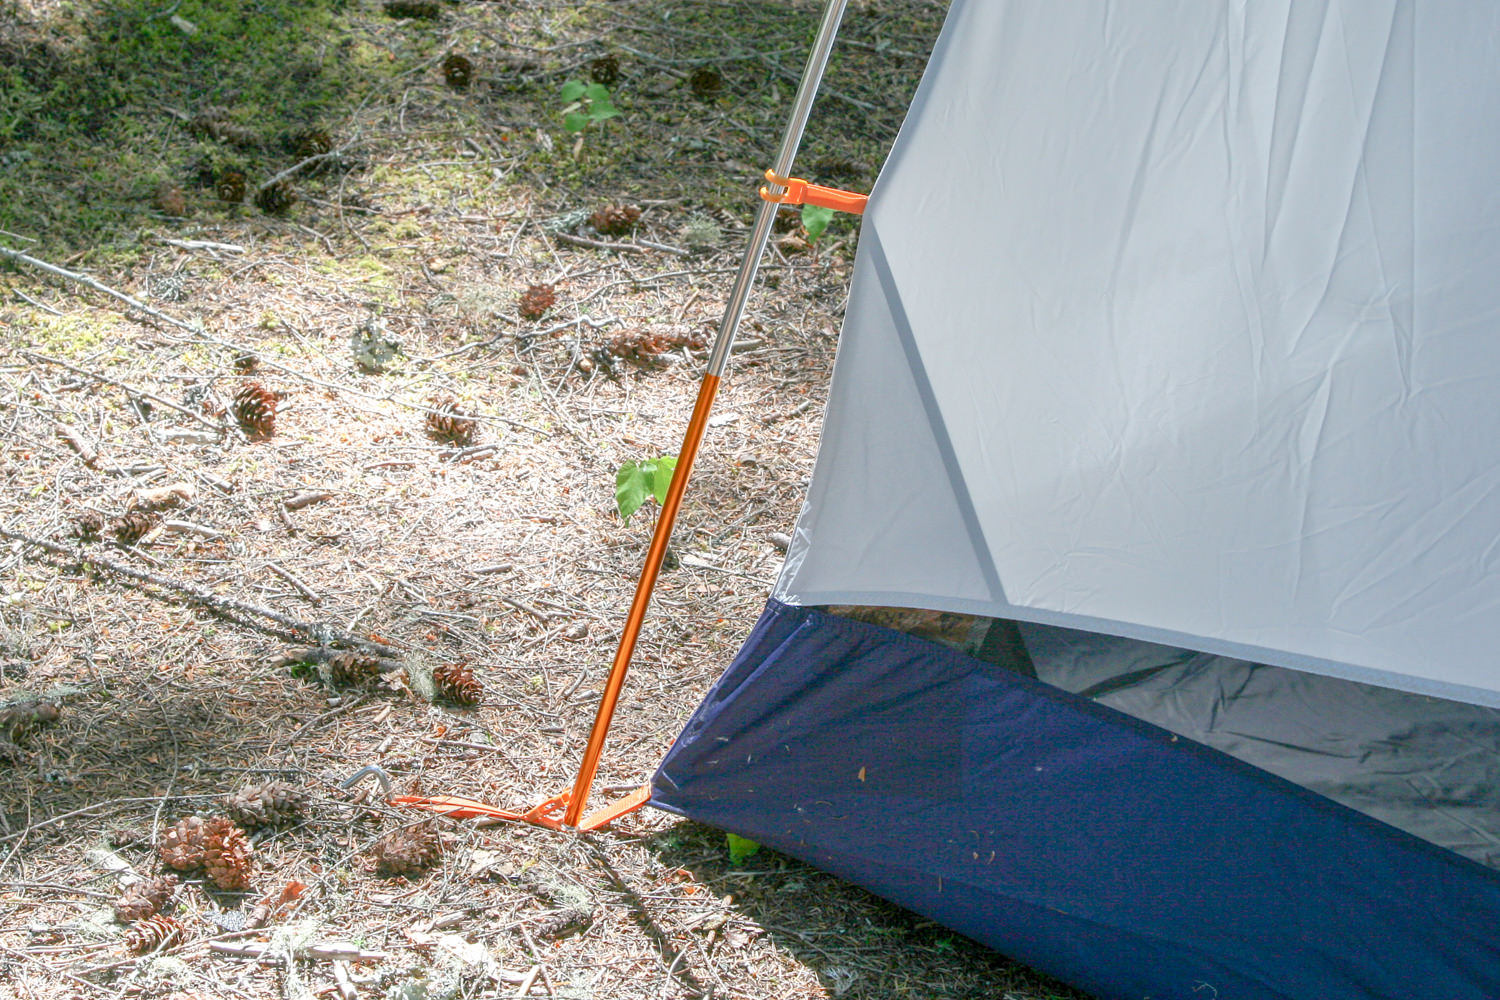 color-coded poles make for a quick and simple set up.